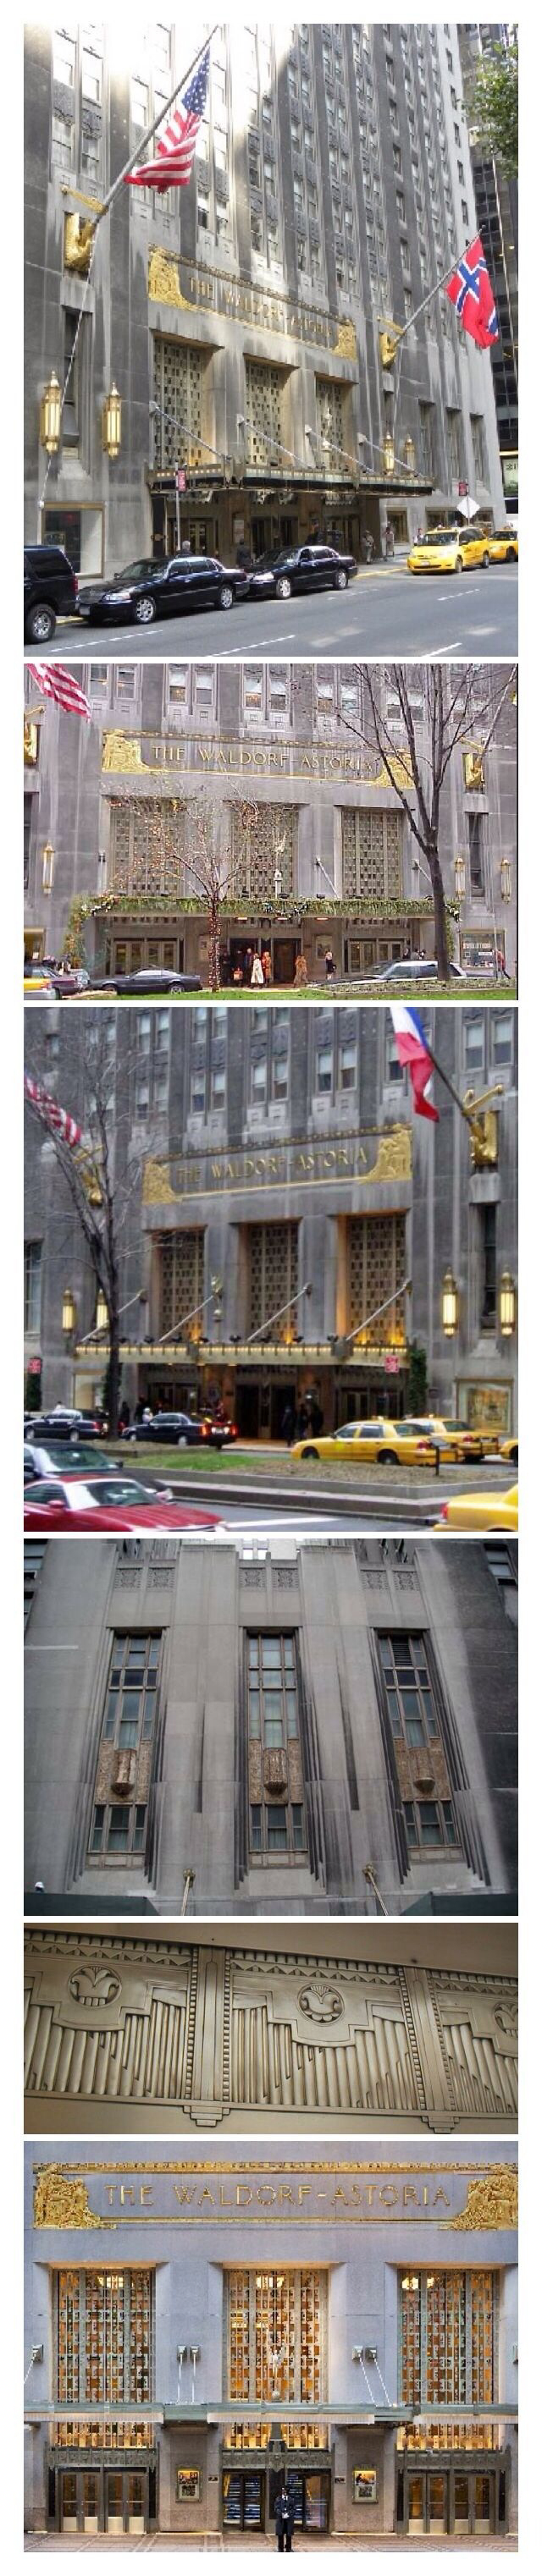 Luxury Stay At The Waldorf Astoria Hotel New York City Summer 2016 Pa Nyc We Here This Trip Into